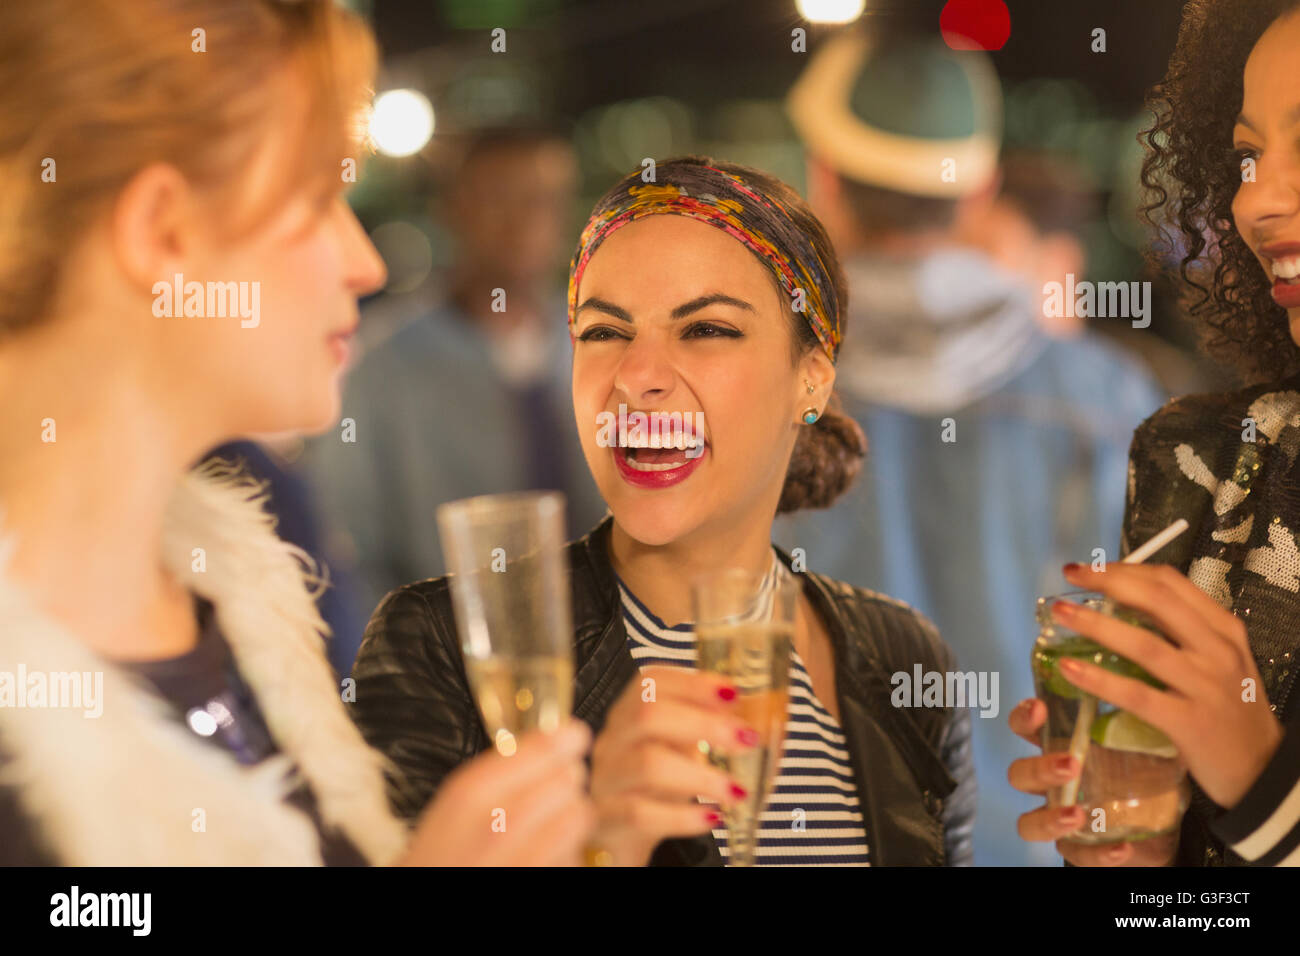 Enthusiastic young women drinking champagne and laughing at party - Stock Image